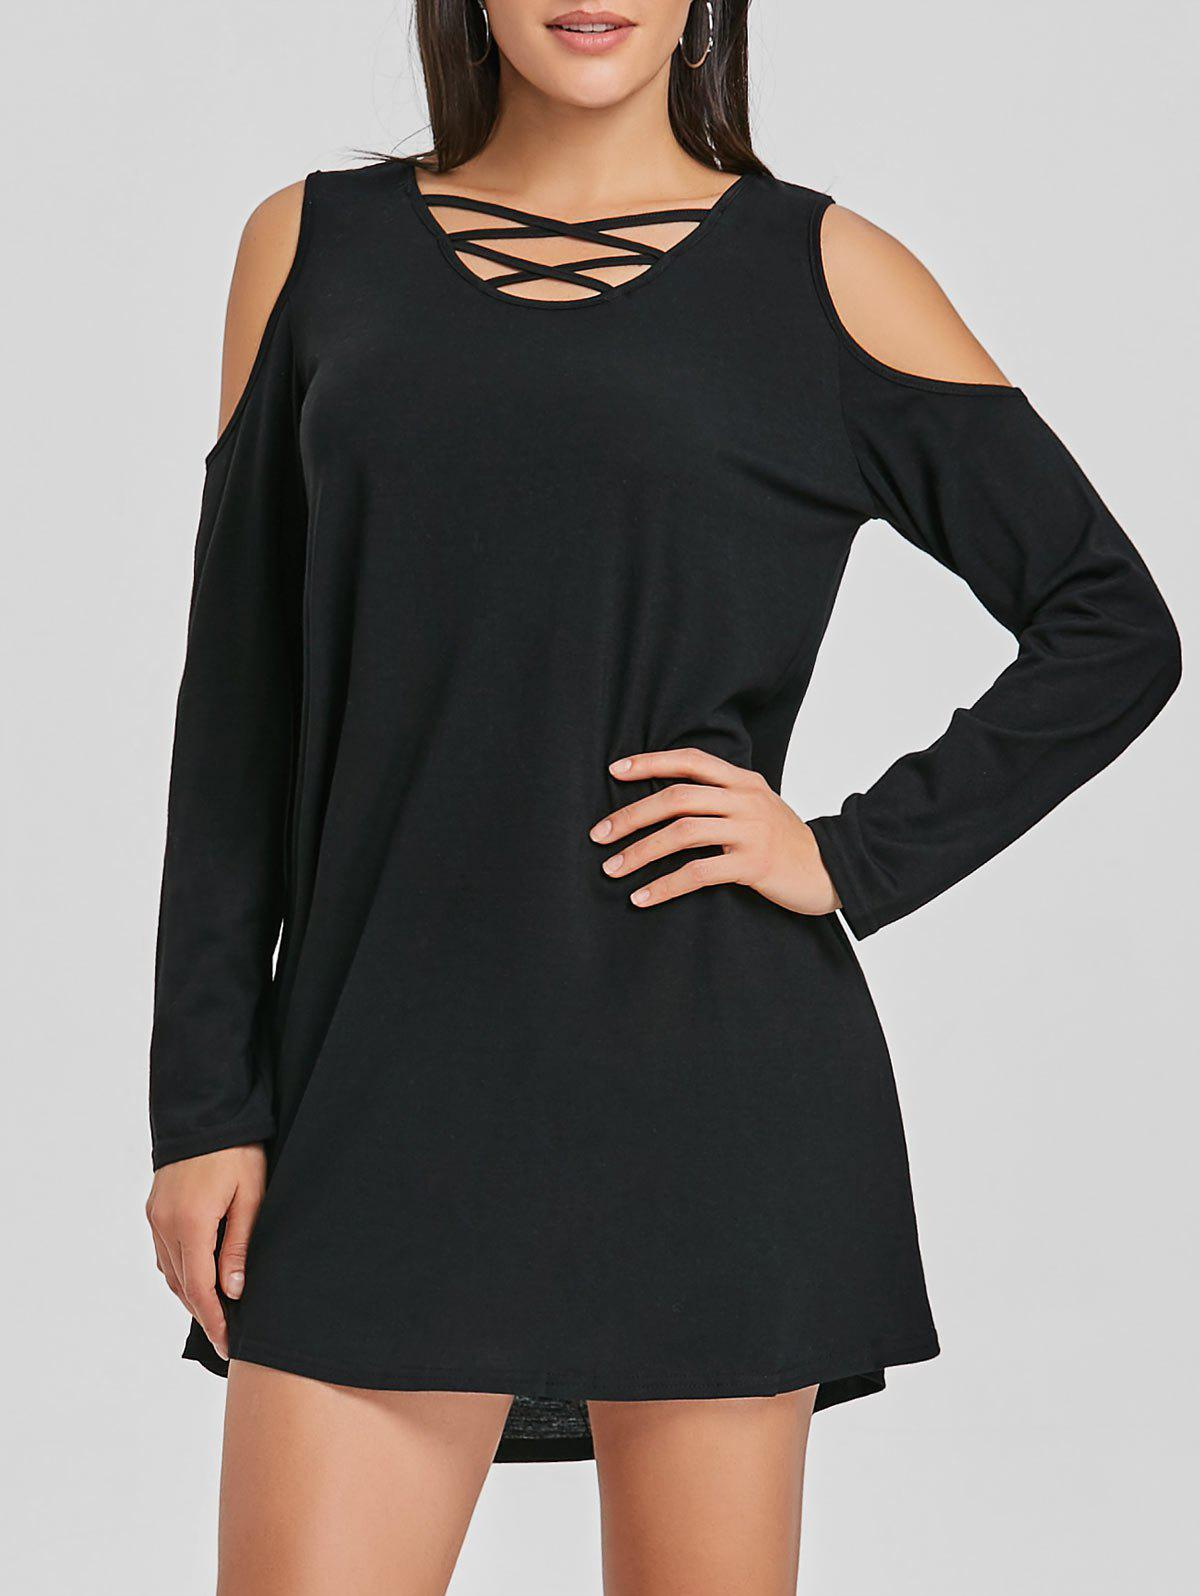 Criss Cross Cold Shoulder Mini Shift Dress - BLACK XL